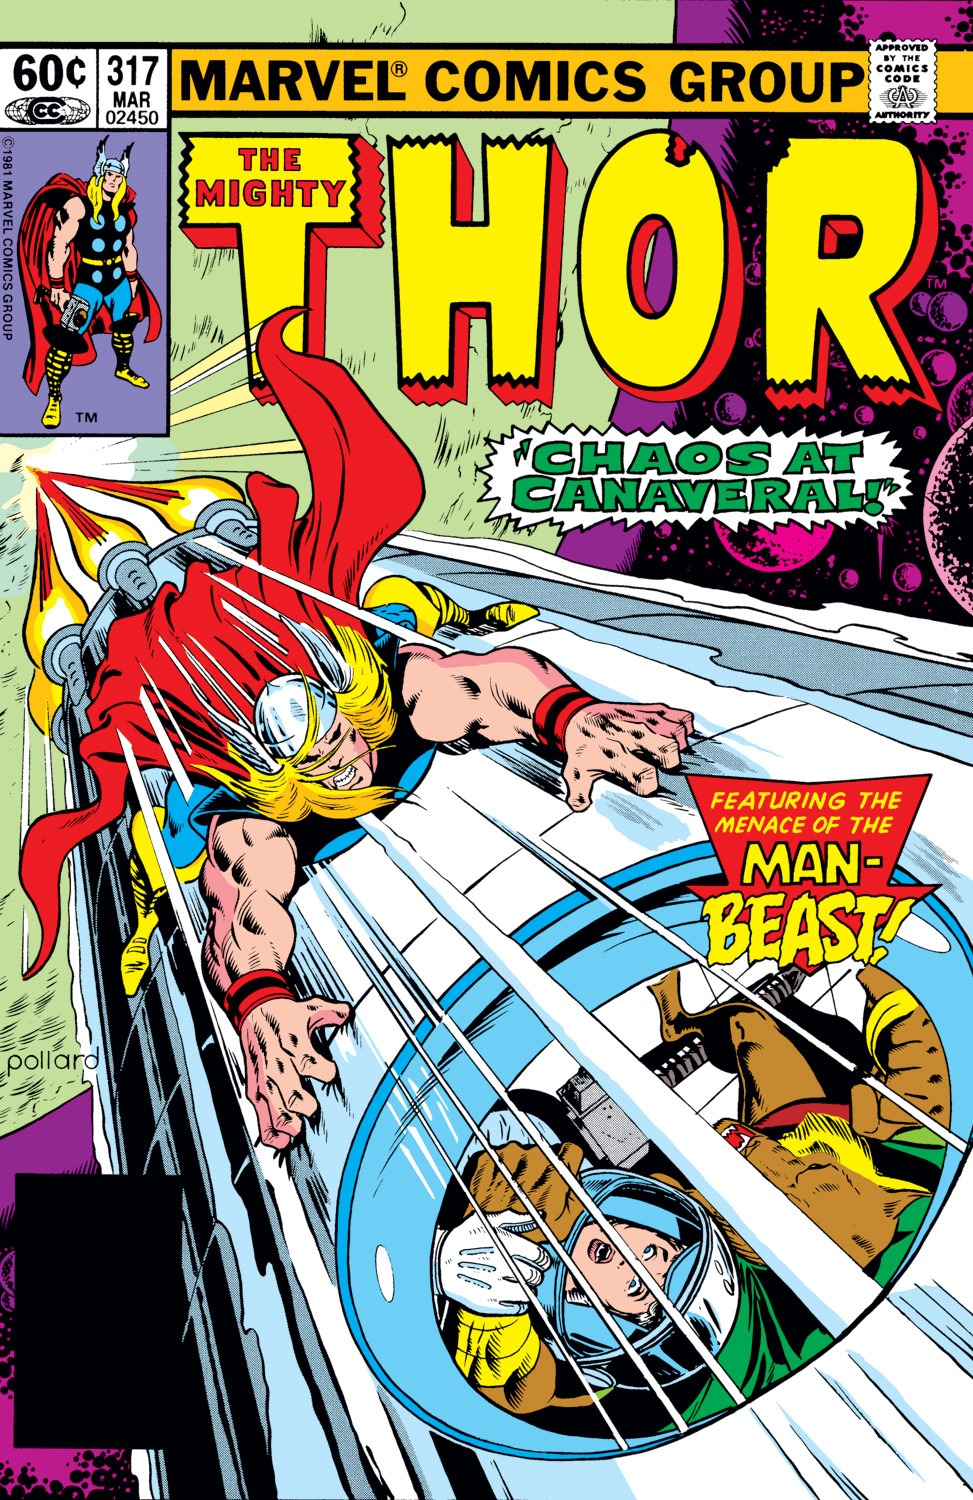 Thor (1966) 317 Page 1